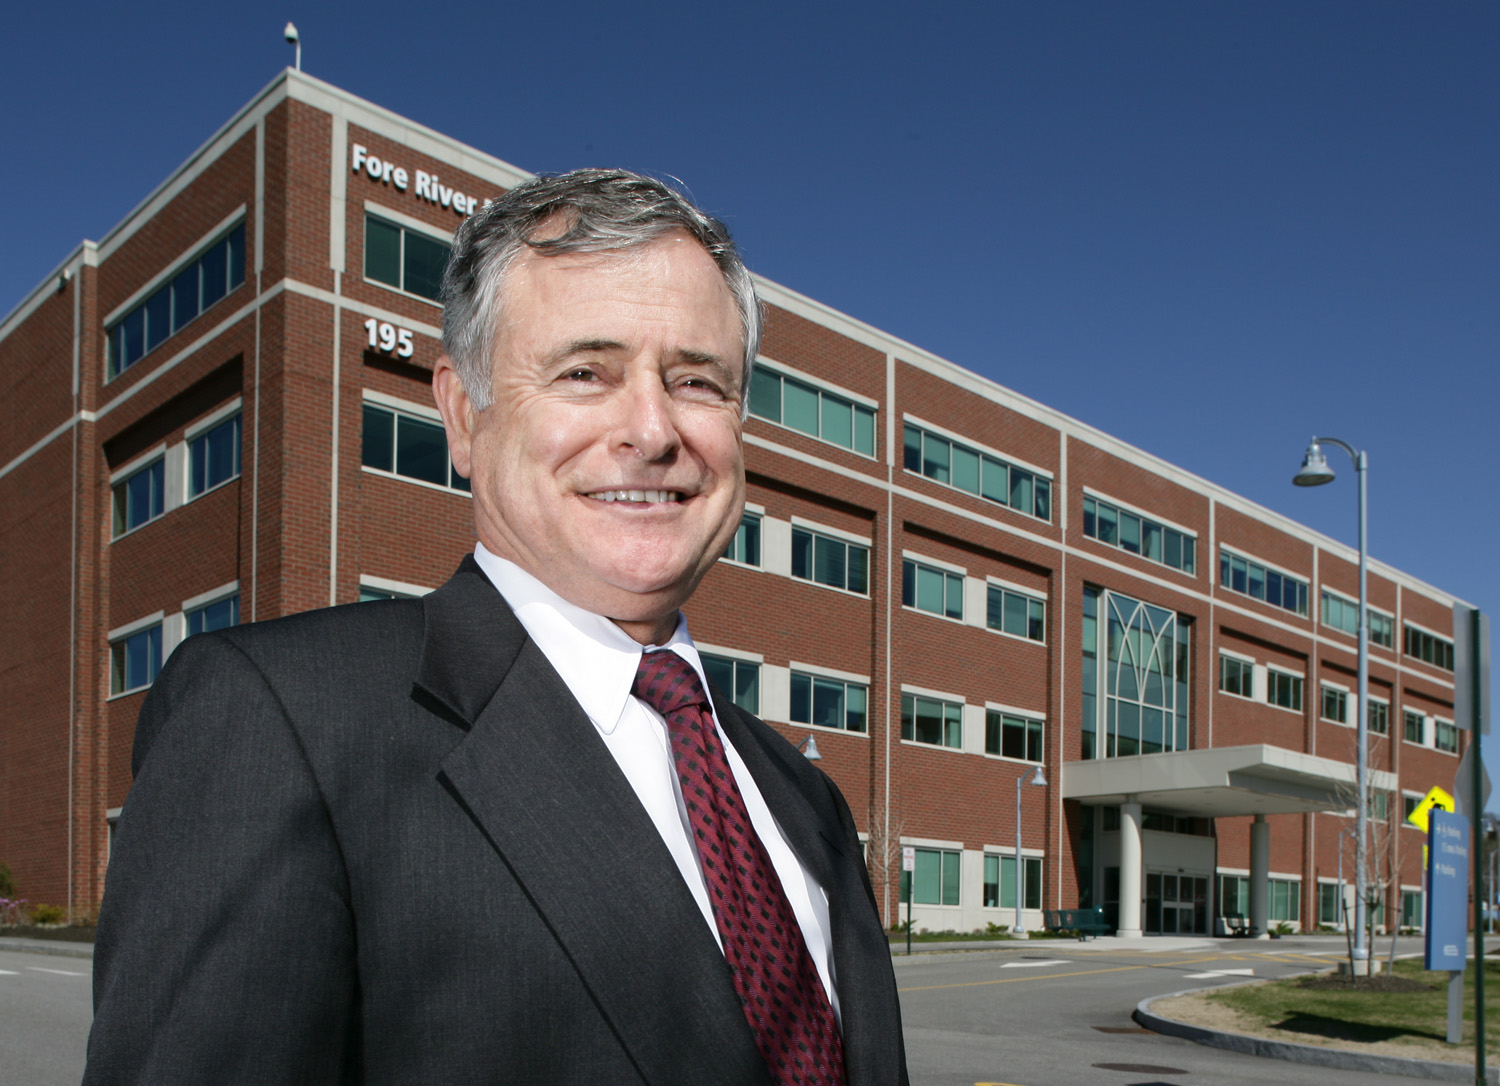 Richard Littlefield for Camden National Bank in Portland Maine